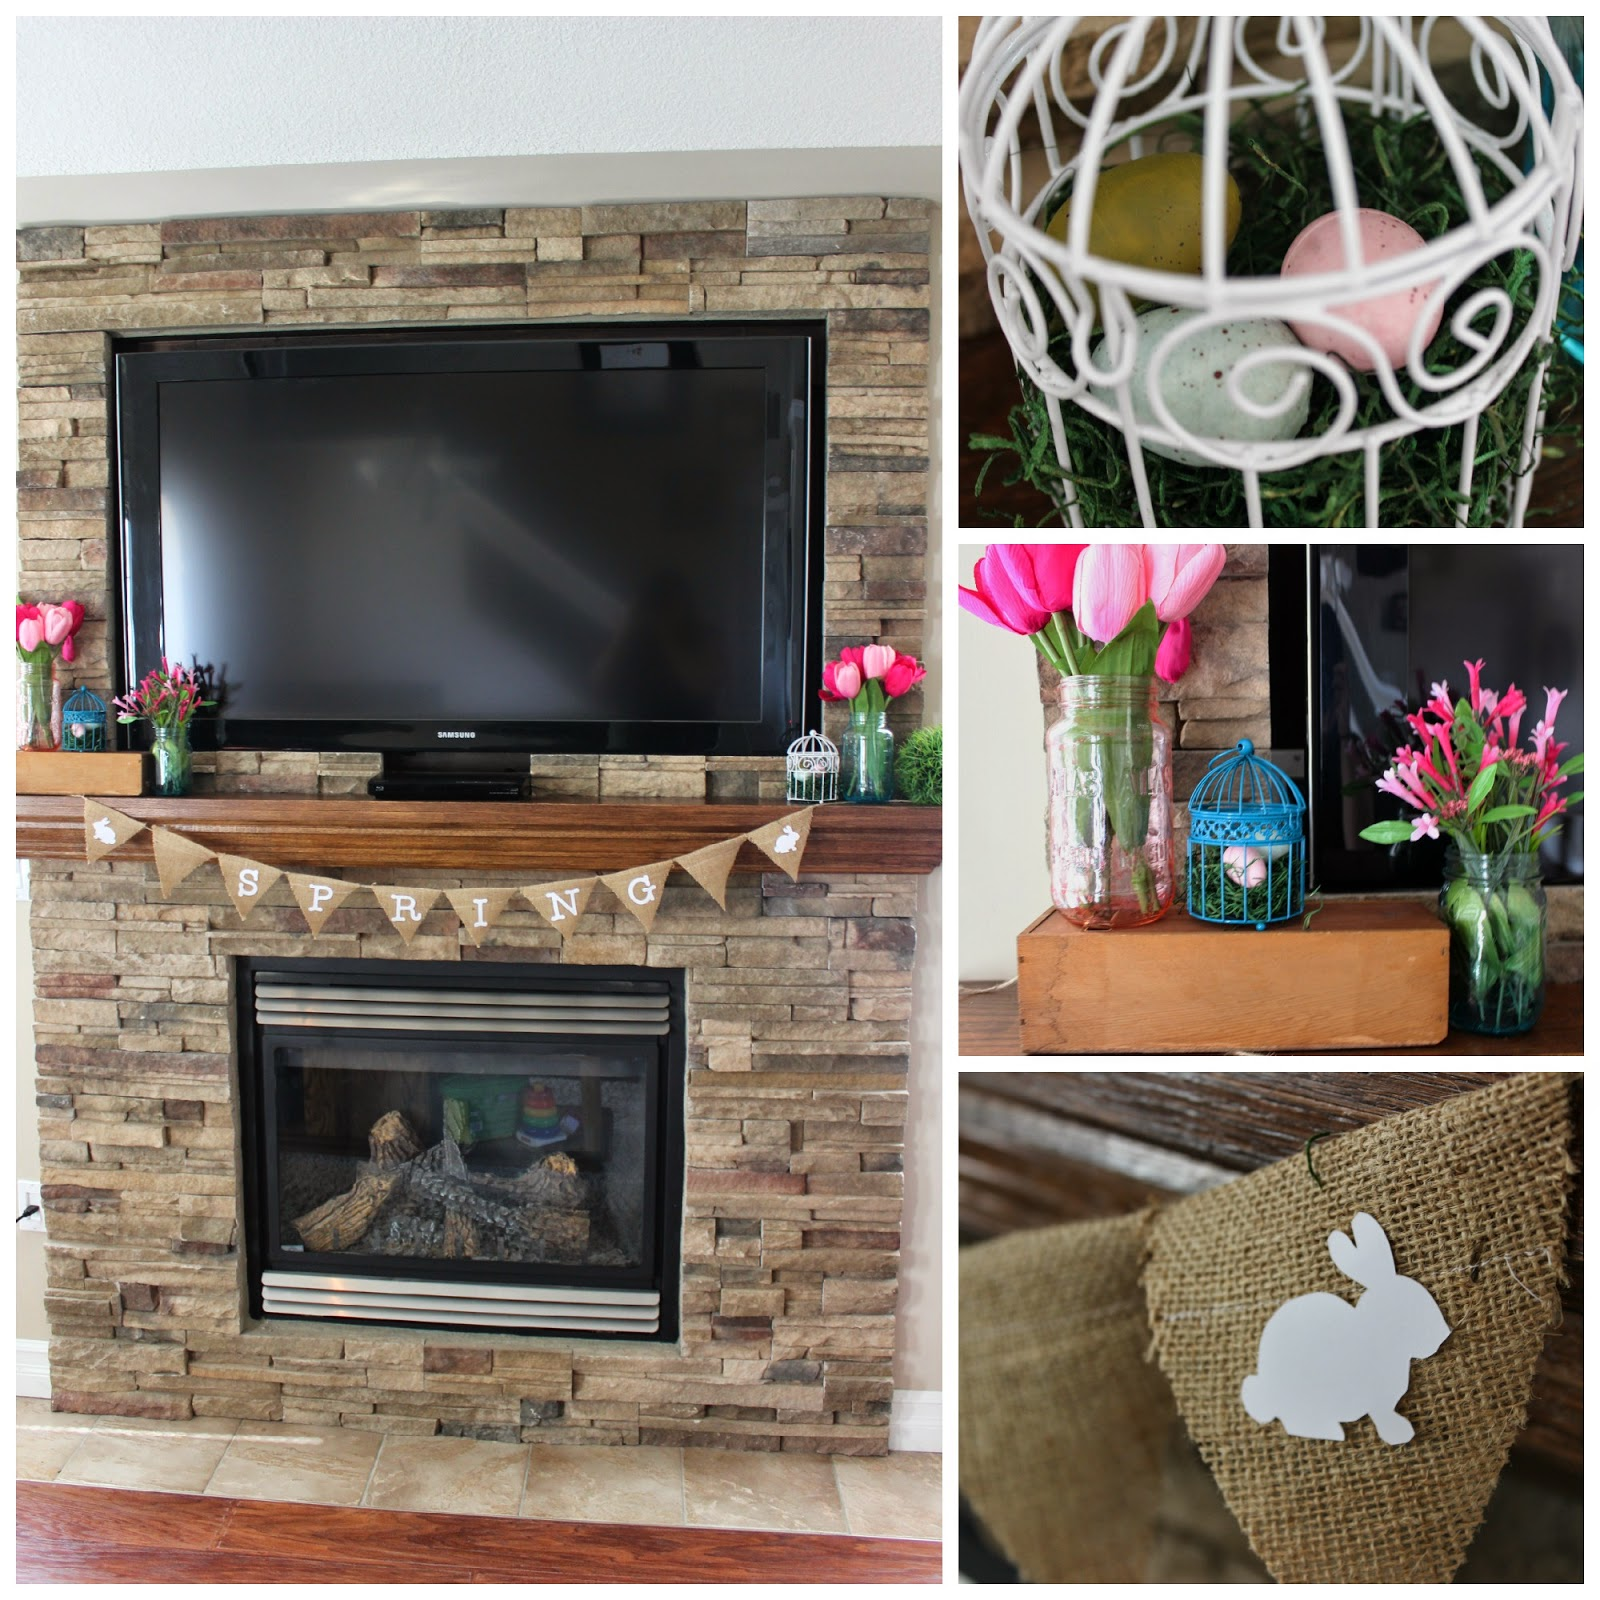 A beautifully decorated Spring mantle. Love this brick fireplace, beautifully decorated with bright Spring colours and florals.